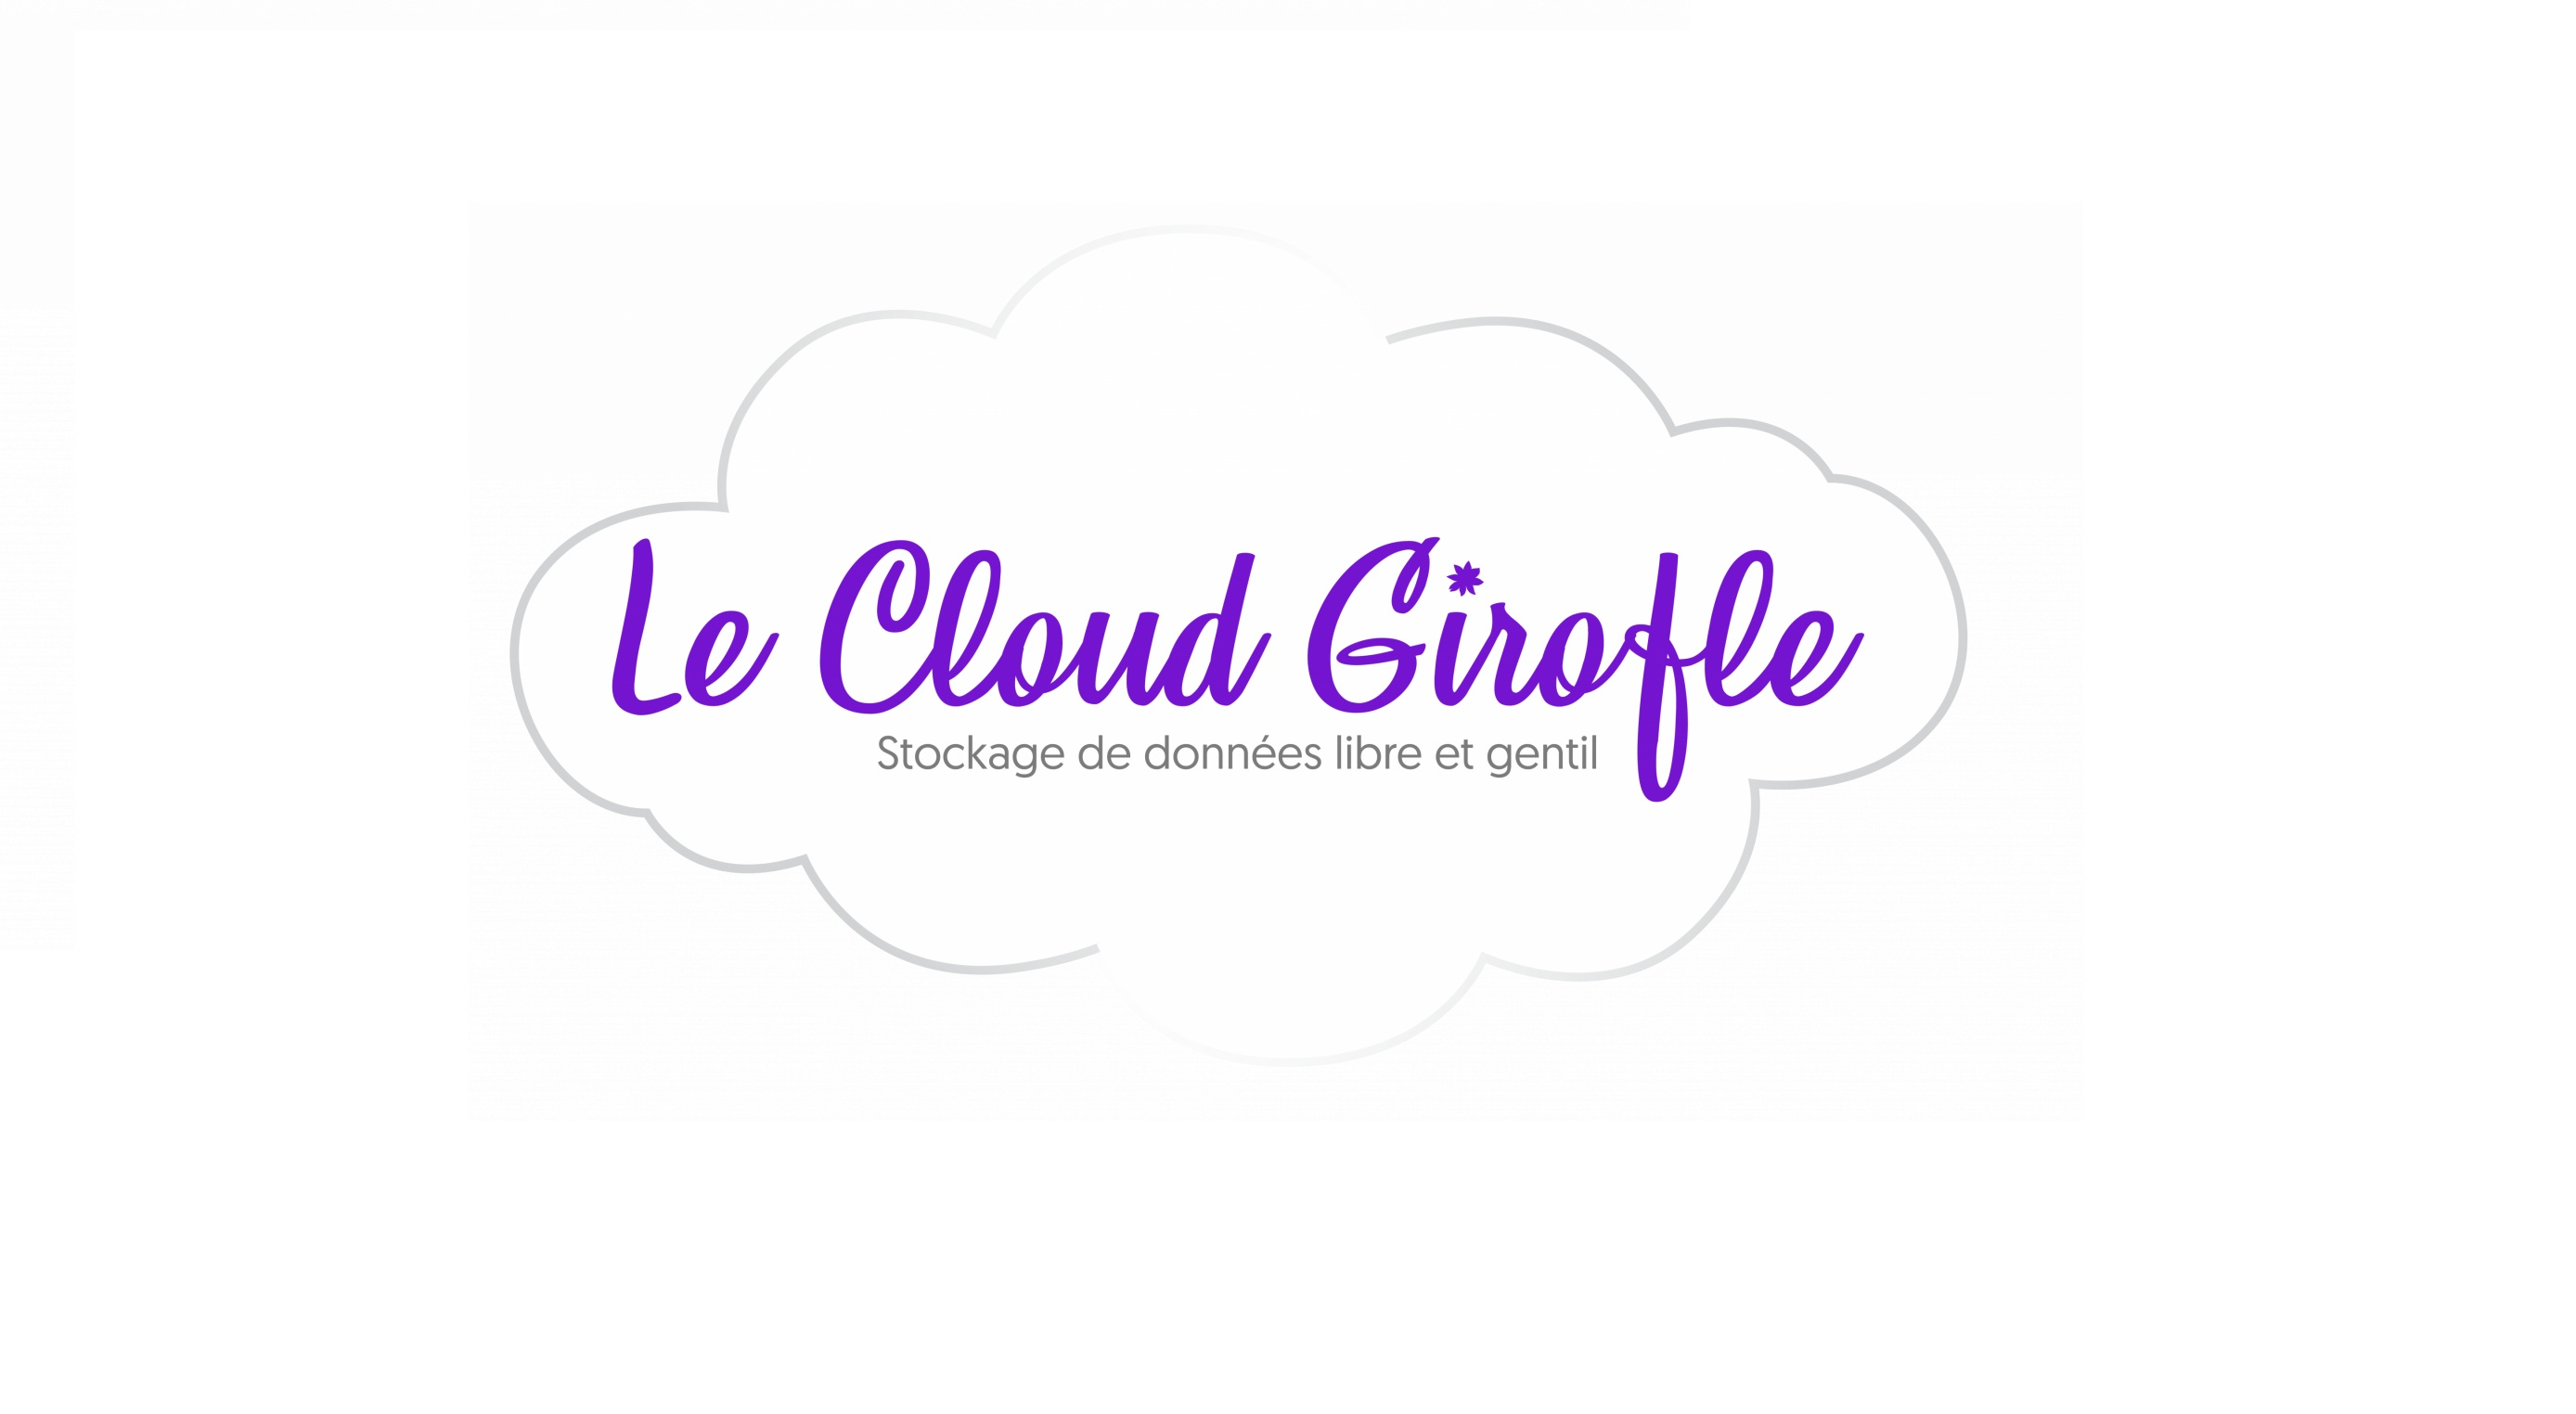 Association - Le Cloud Girofle